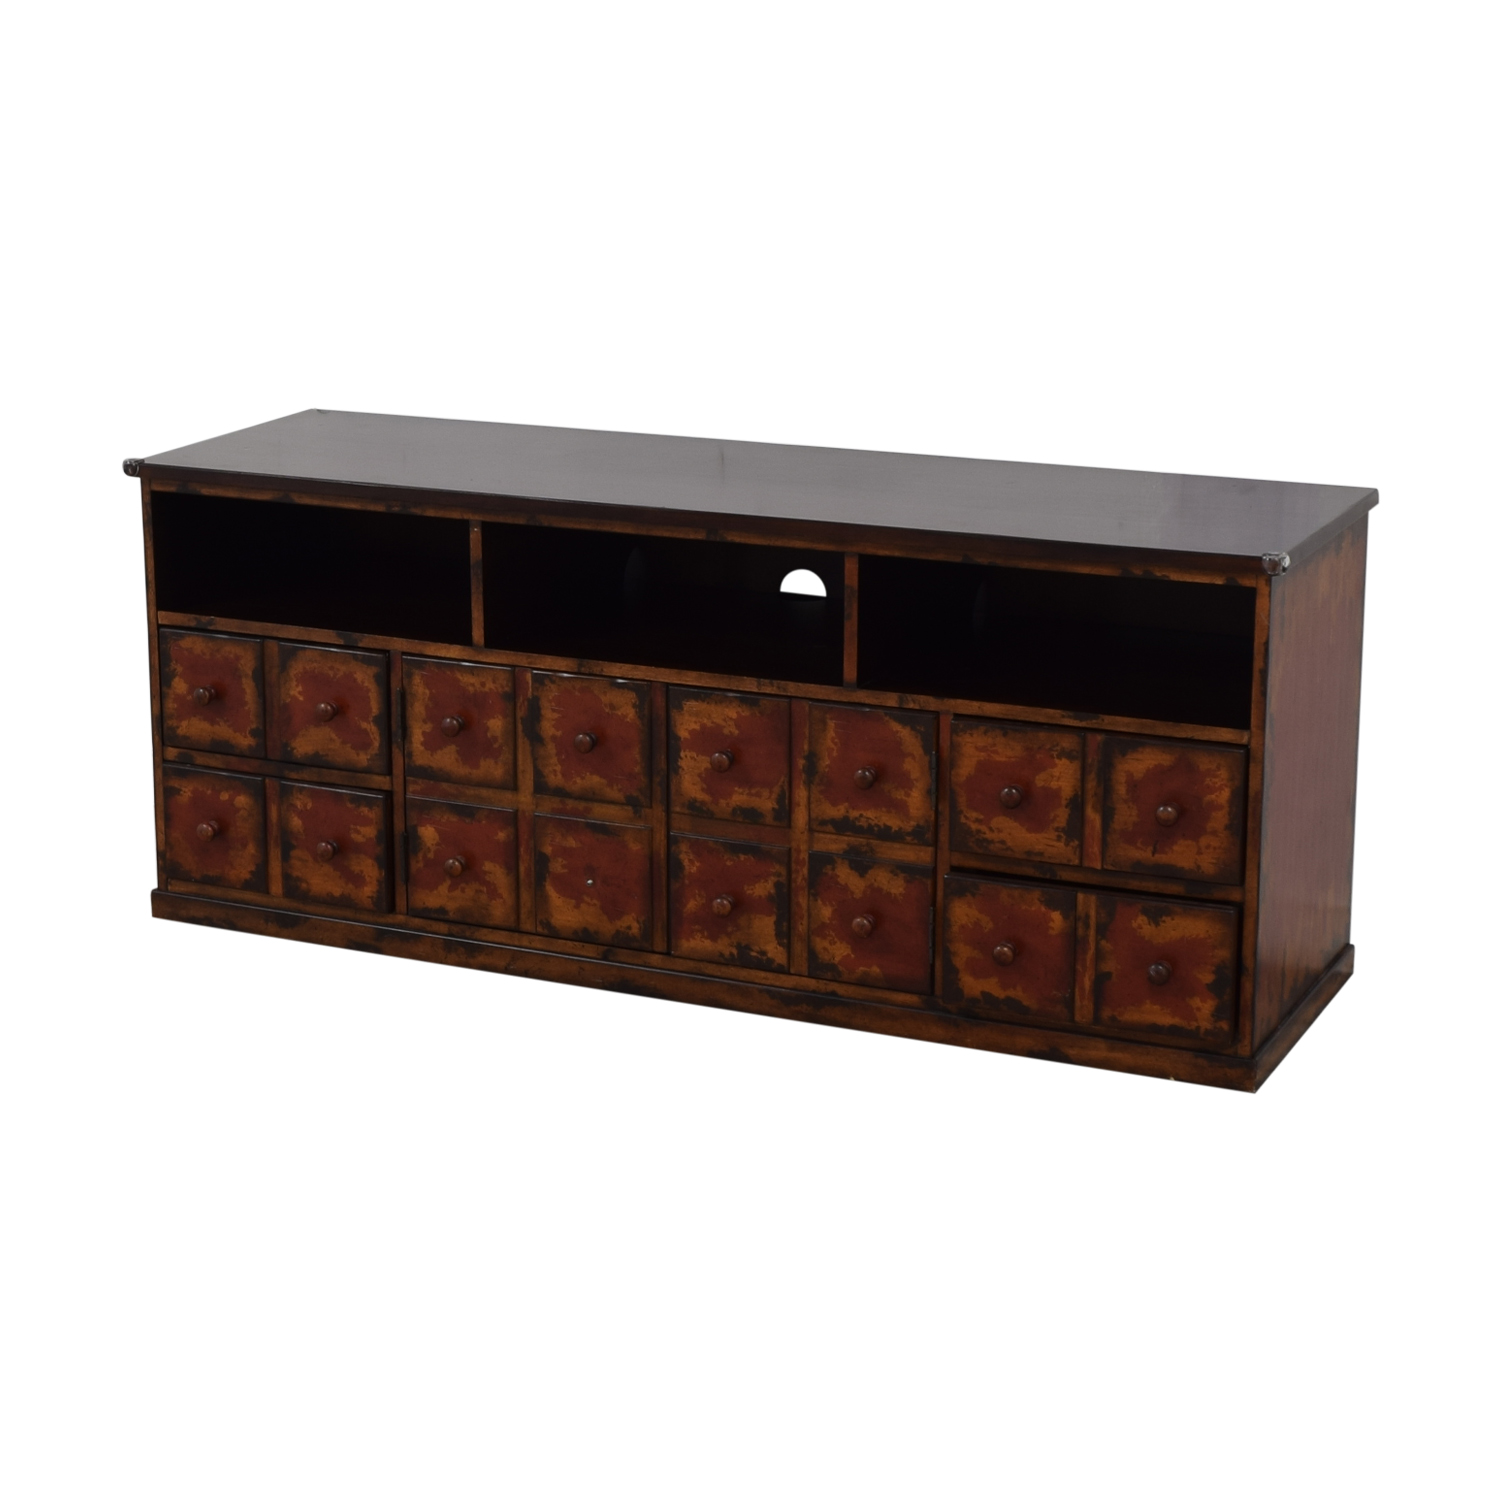 Pottery Barn Pottery Barn Entertainment Console on sale